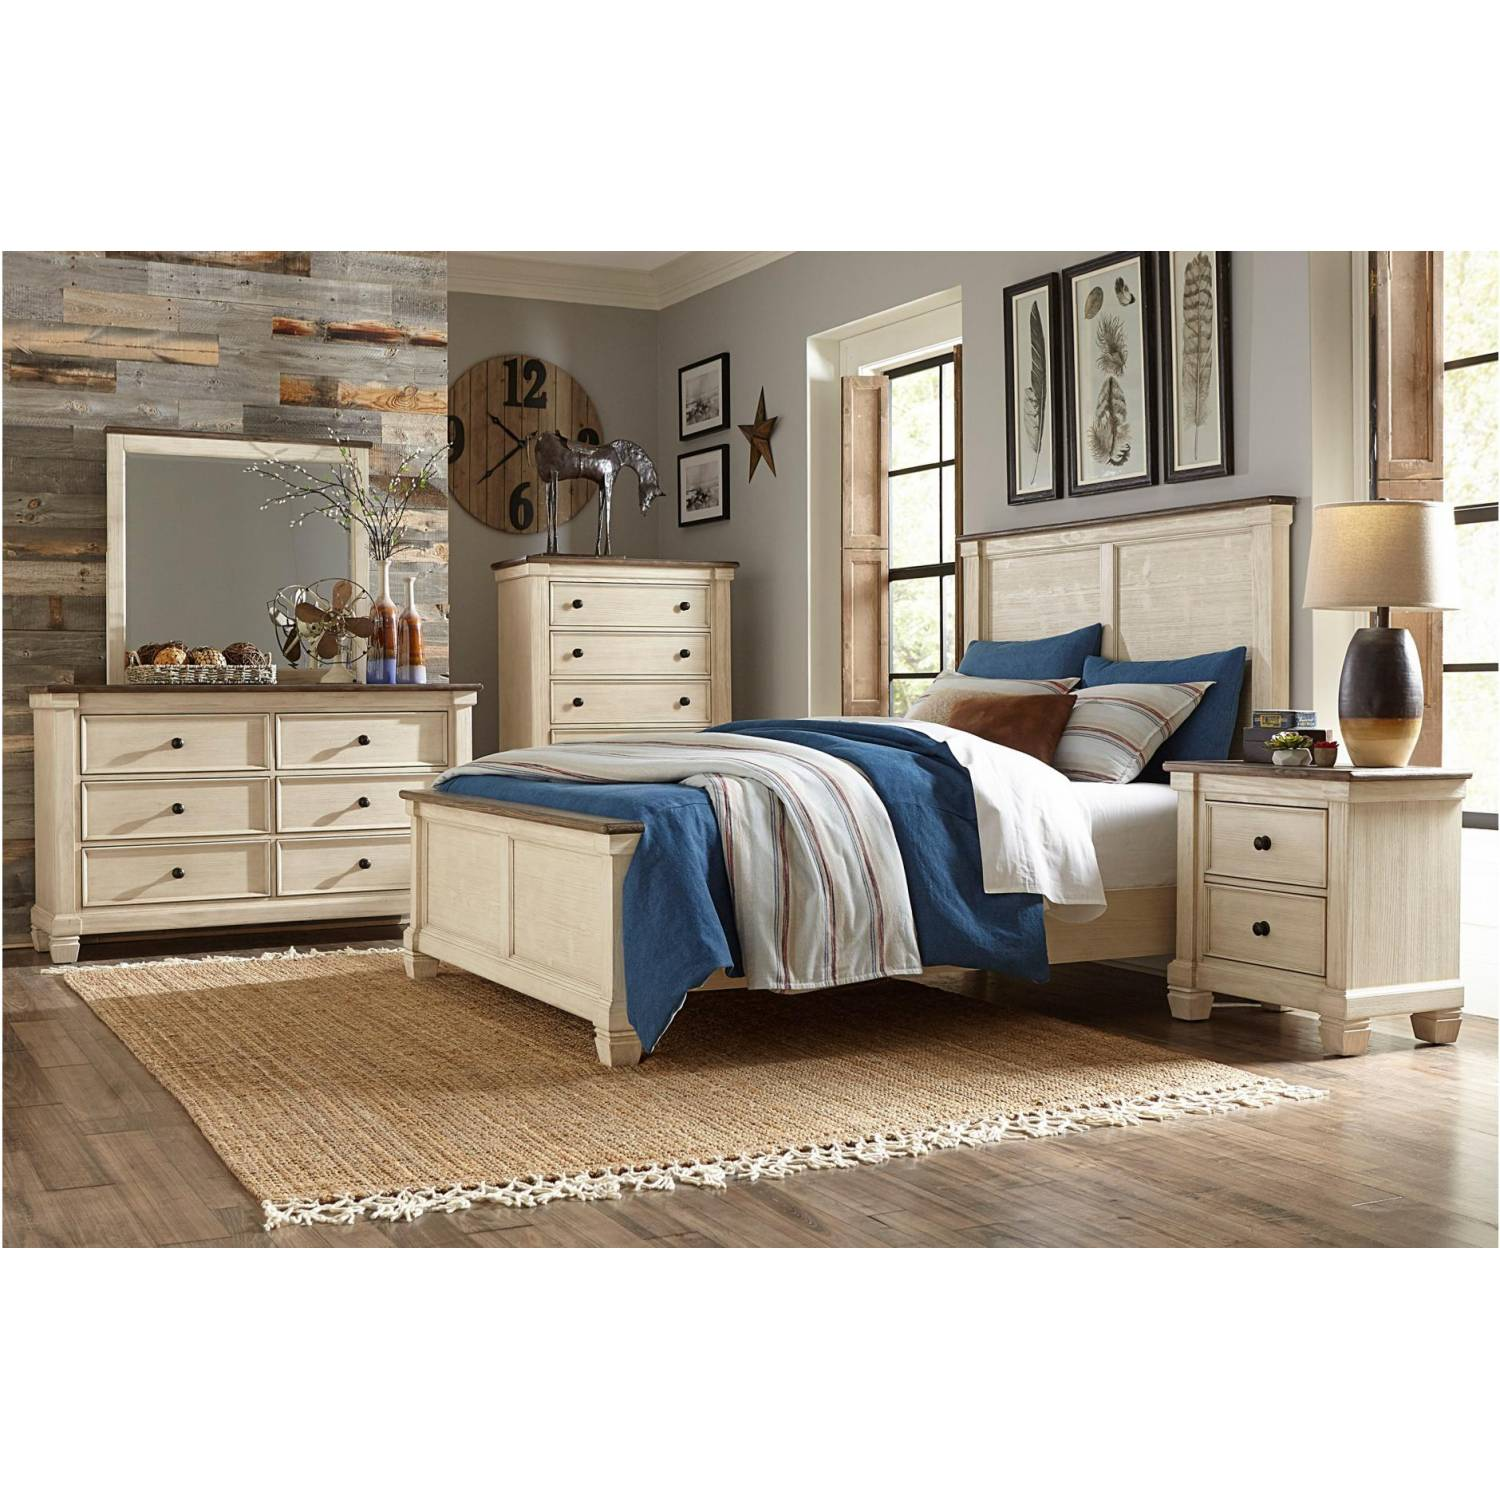 1626-Gr Weaver Queen Bedroom Set - Antique White